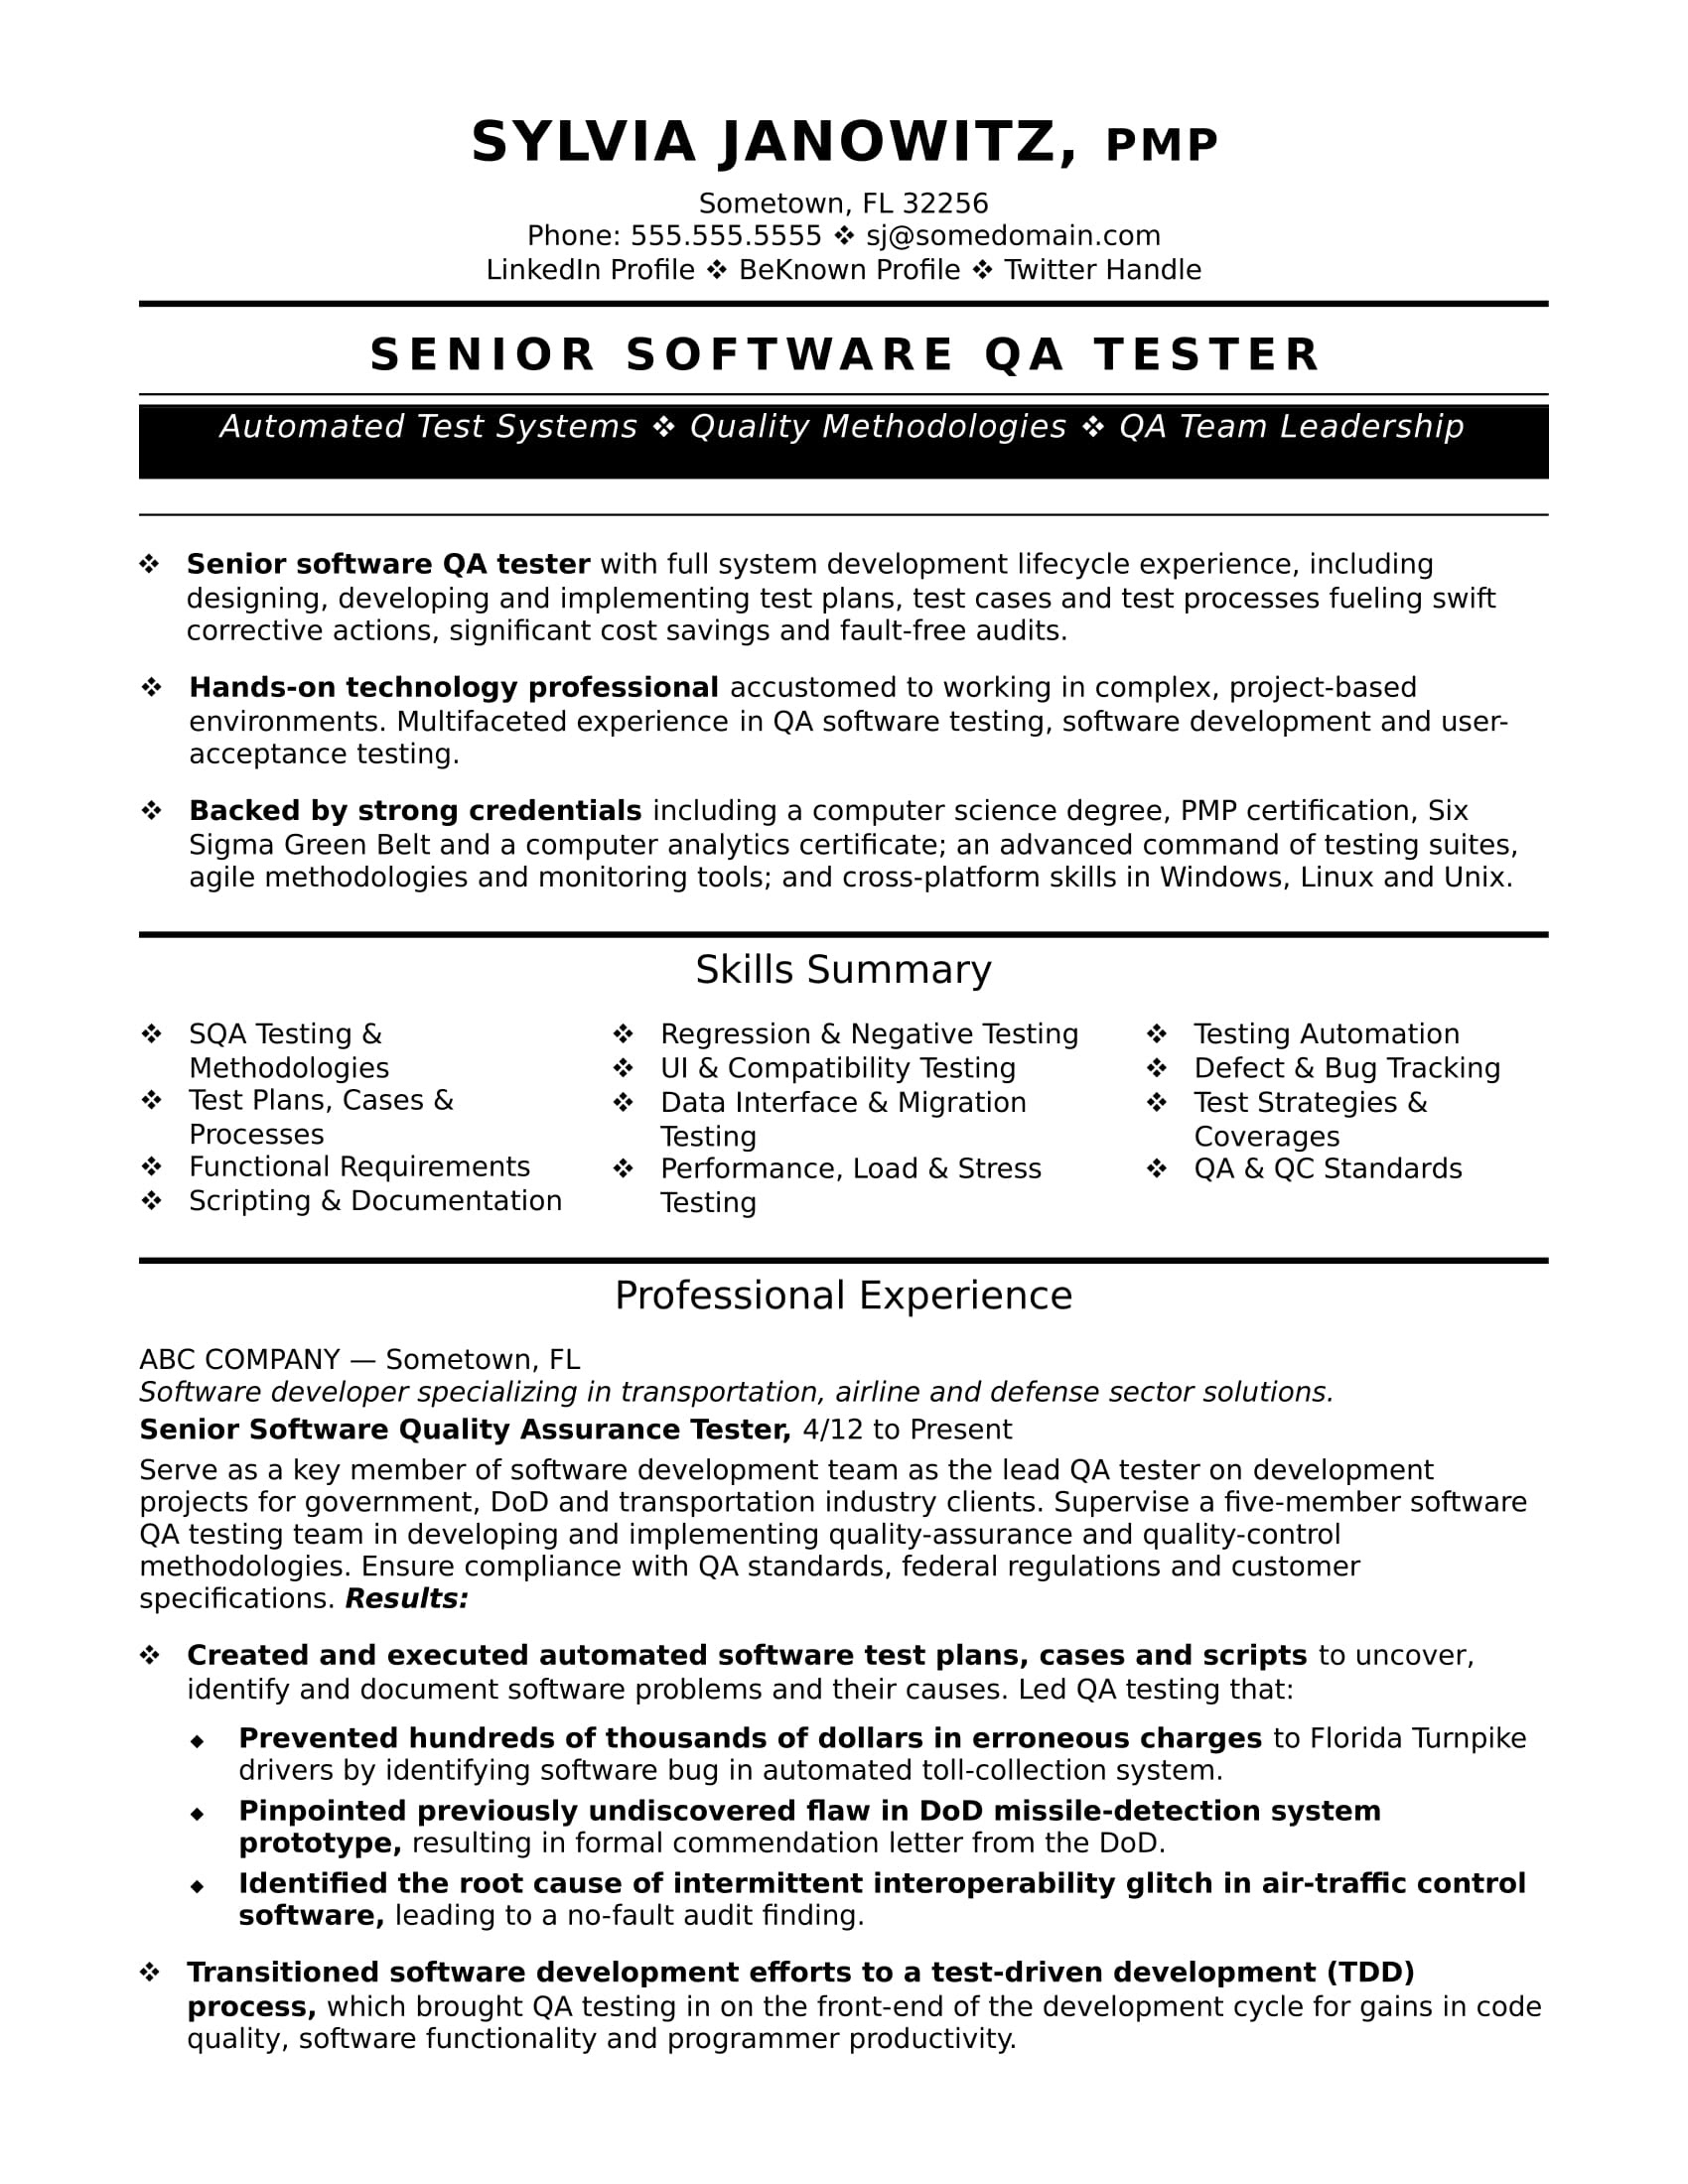 qa software tester experienced